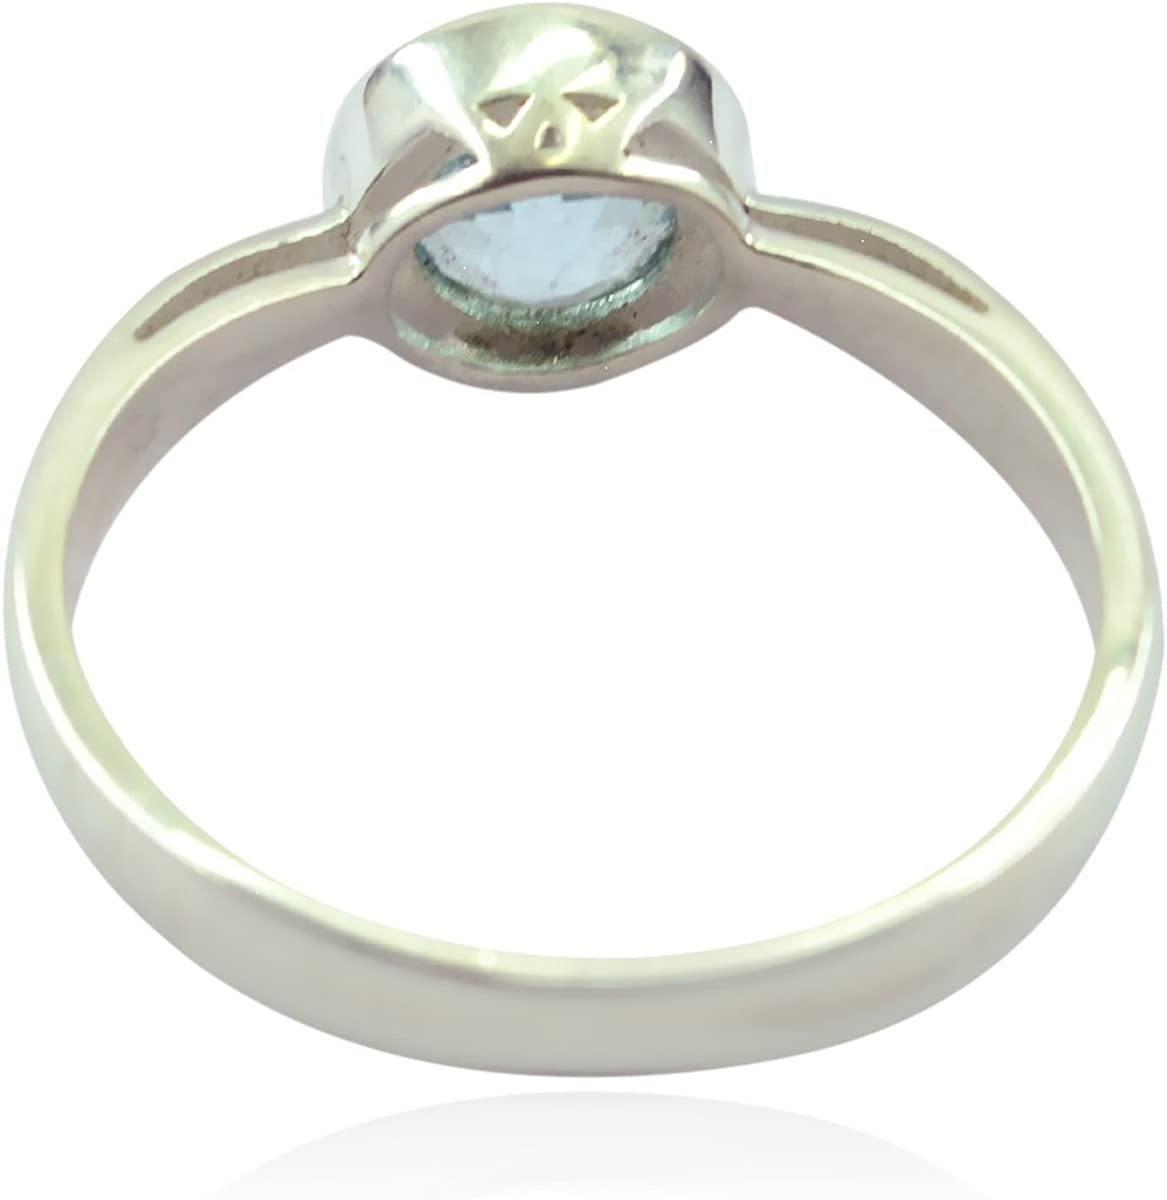 Lovely Gemstones Round Faceted Blue Topaz Rings Wholesale Jewellery Shops Gift Name Ring Sterling Silver Blue Blue Topaz Lovely Gemstones Ring